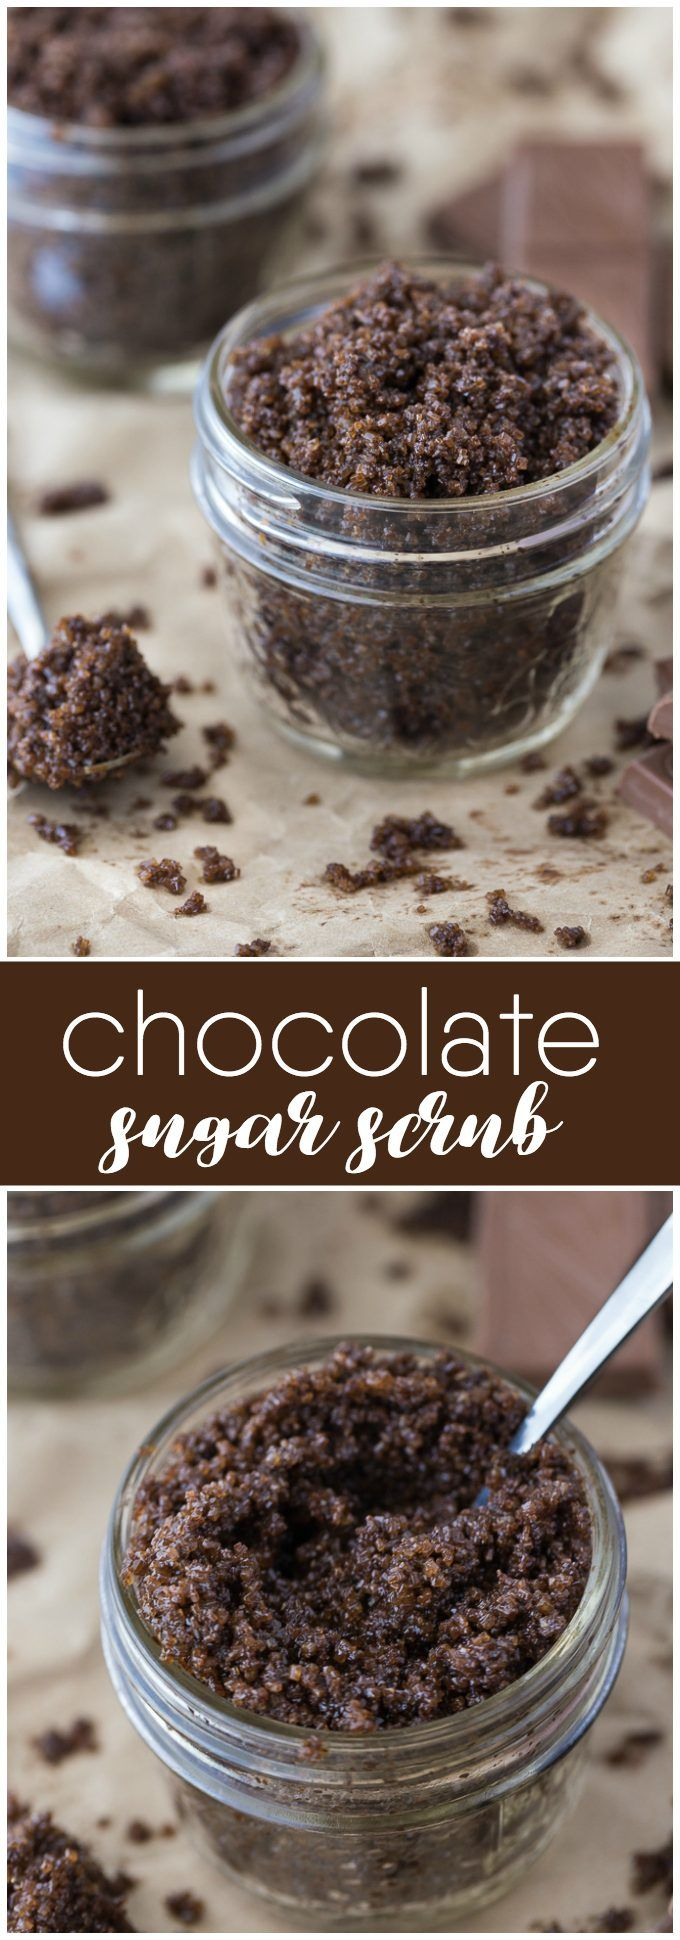 Chocolate Sugar Scrub - Luxurious and decadent! You may be tempted to eat this sweet scrub, but resist if you can. It feels amazing on your skin.